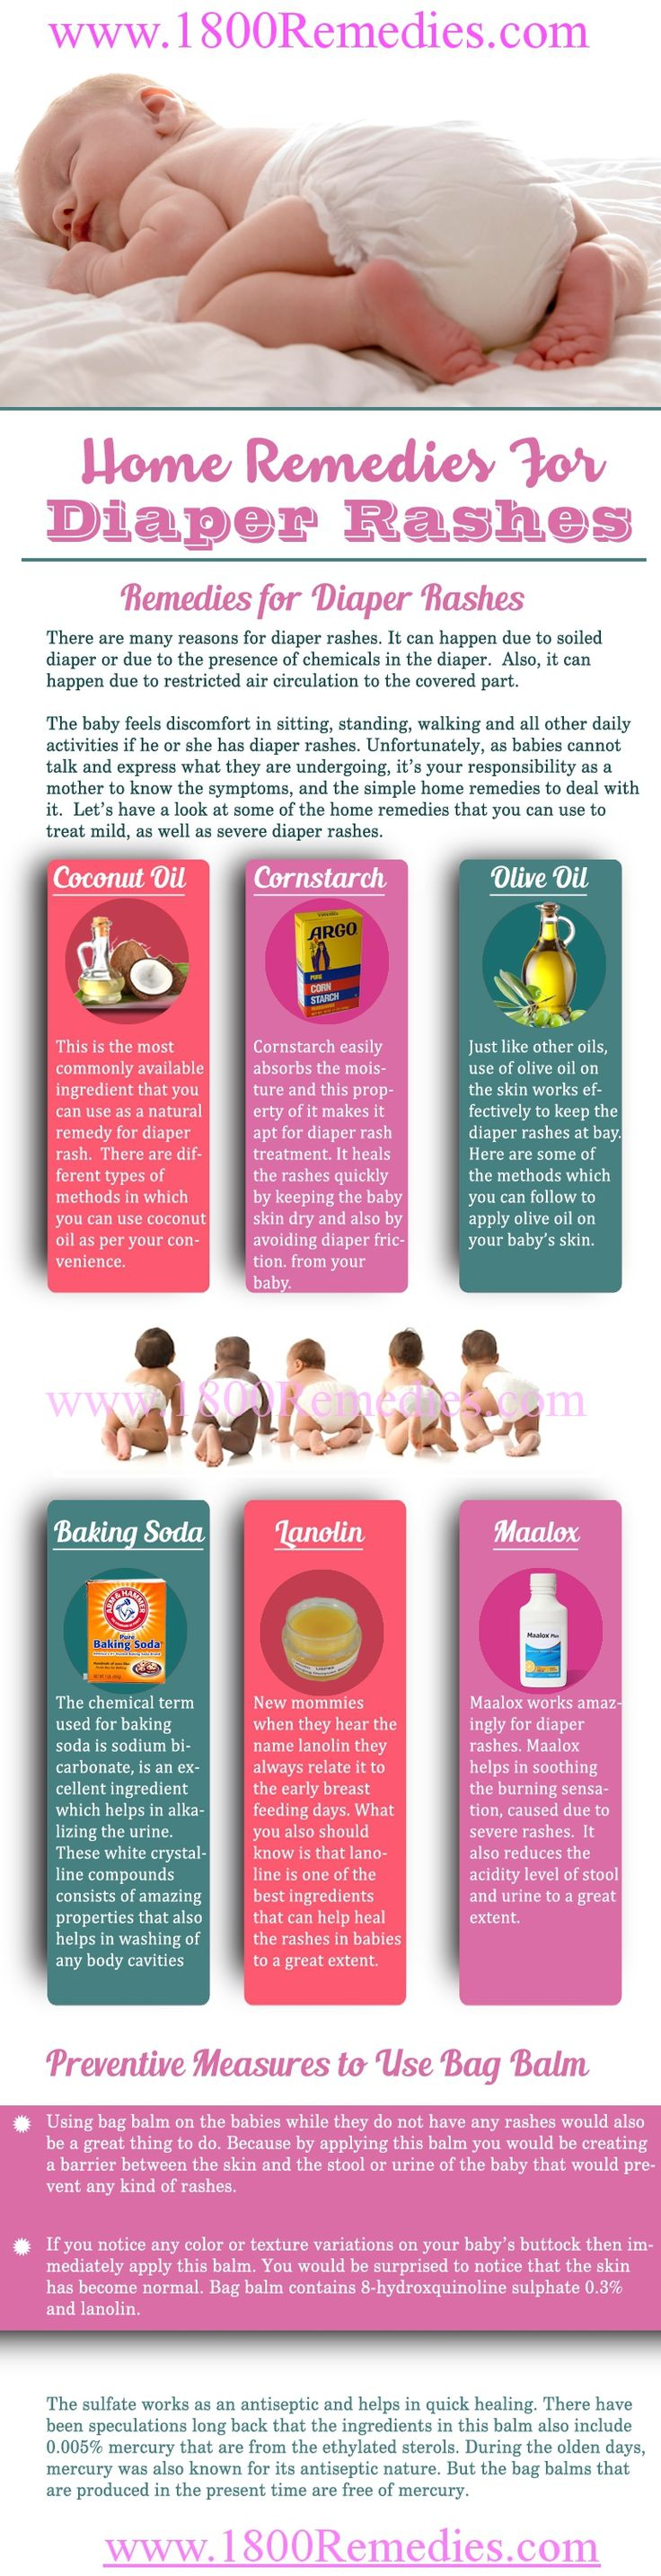 The baby feels discomfort in sitting, standing, walking and all other daily activities if he or she has diaper rashes. Unfortunately, as babies cannot talk and express what they are undergoing, it's your responsibility as a mother to know the symptoms, and the simple home remedies to deal with it. Let's have a look at some of the home remedies that you can use to treat mild, as well as severe diaper rashes. www.1800remedies.com